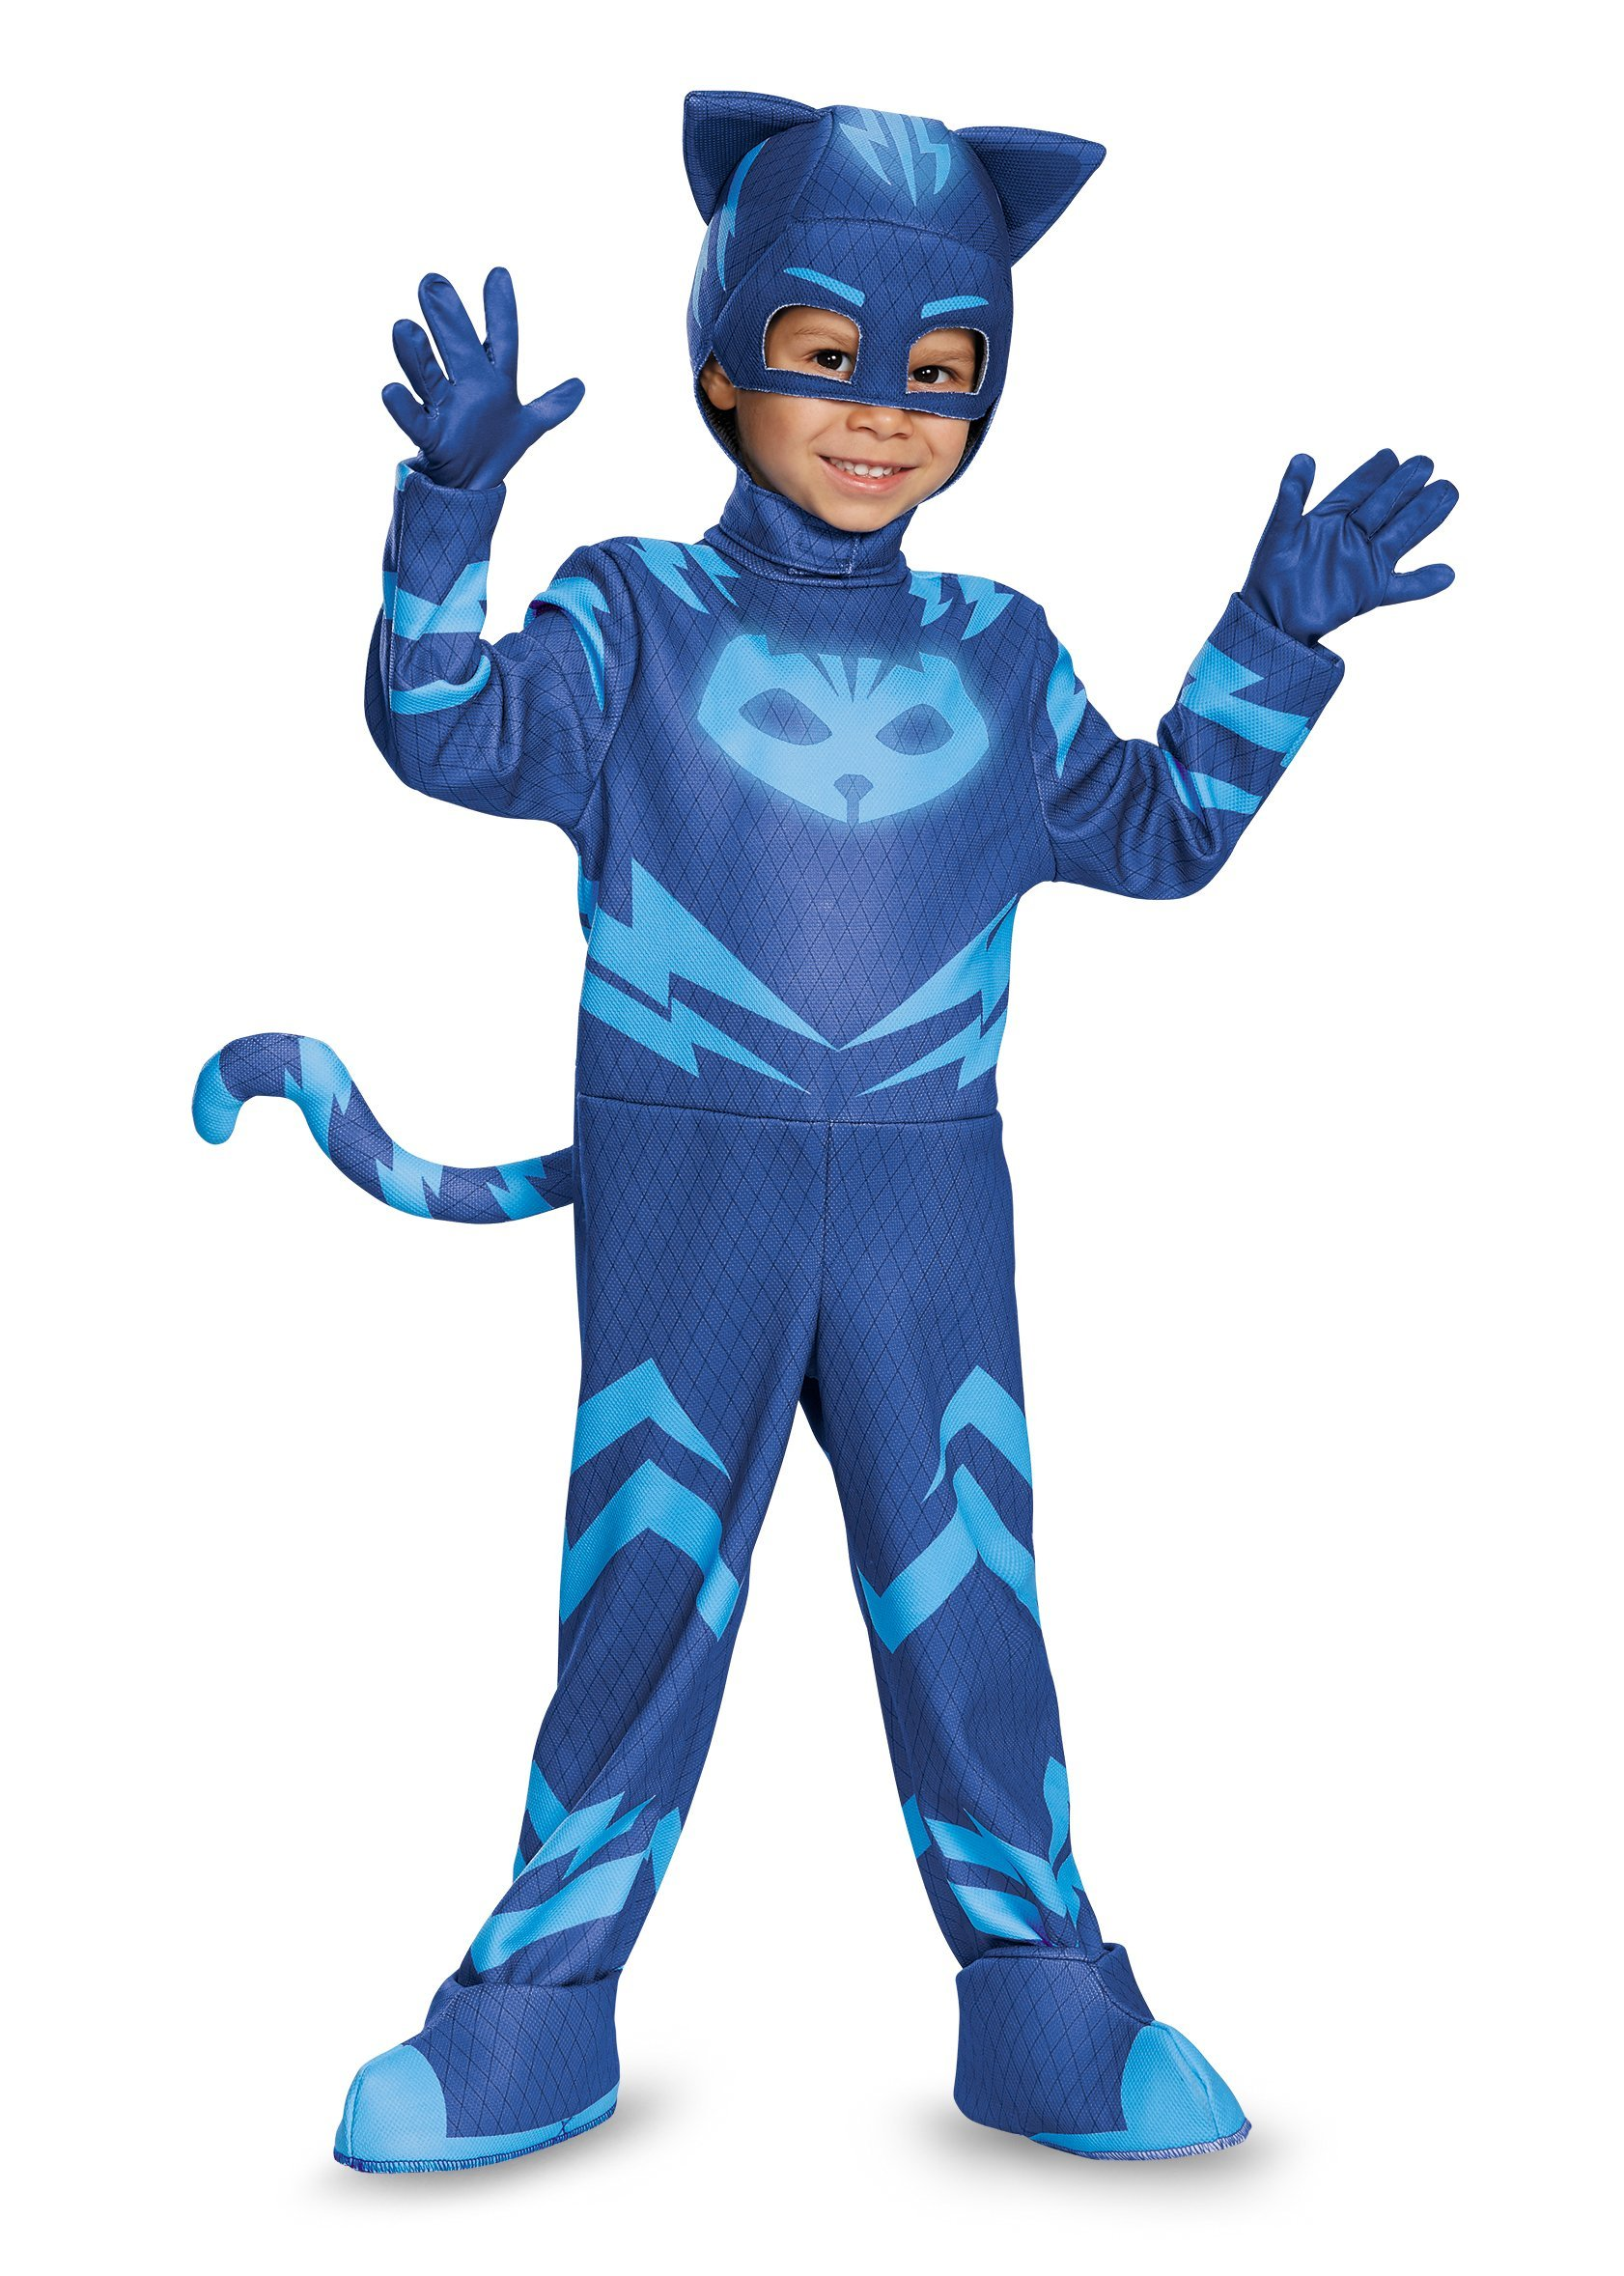 Disguise Catboy Deluxe Toddler PJ Masks Costume, Large/4-6